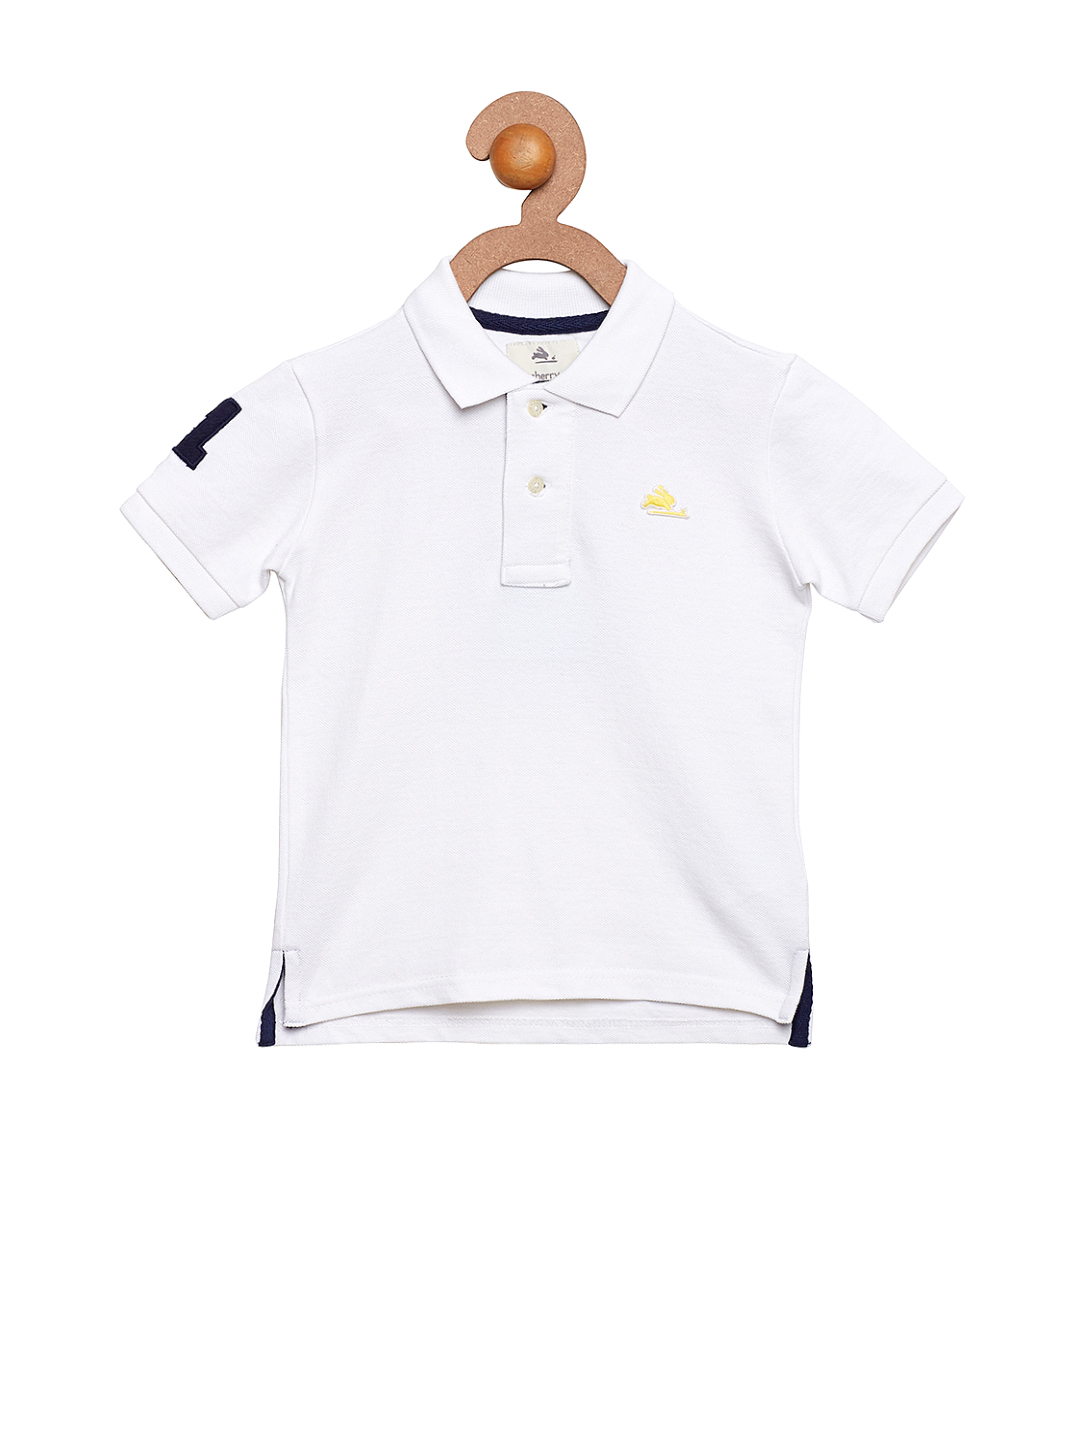 Cherry Crumble Boys White Solid T-shirt